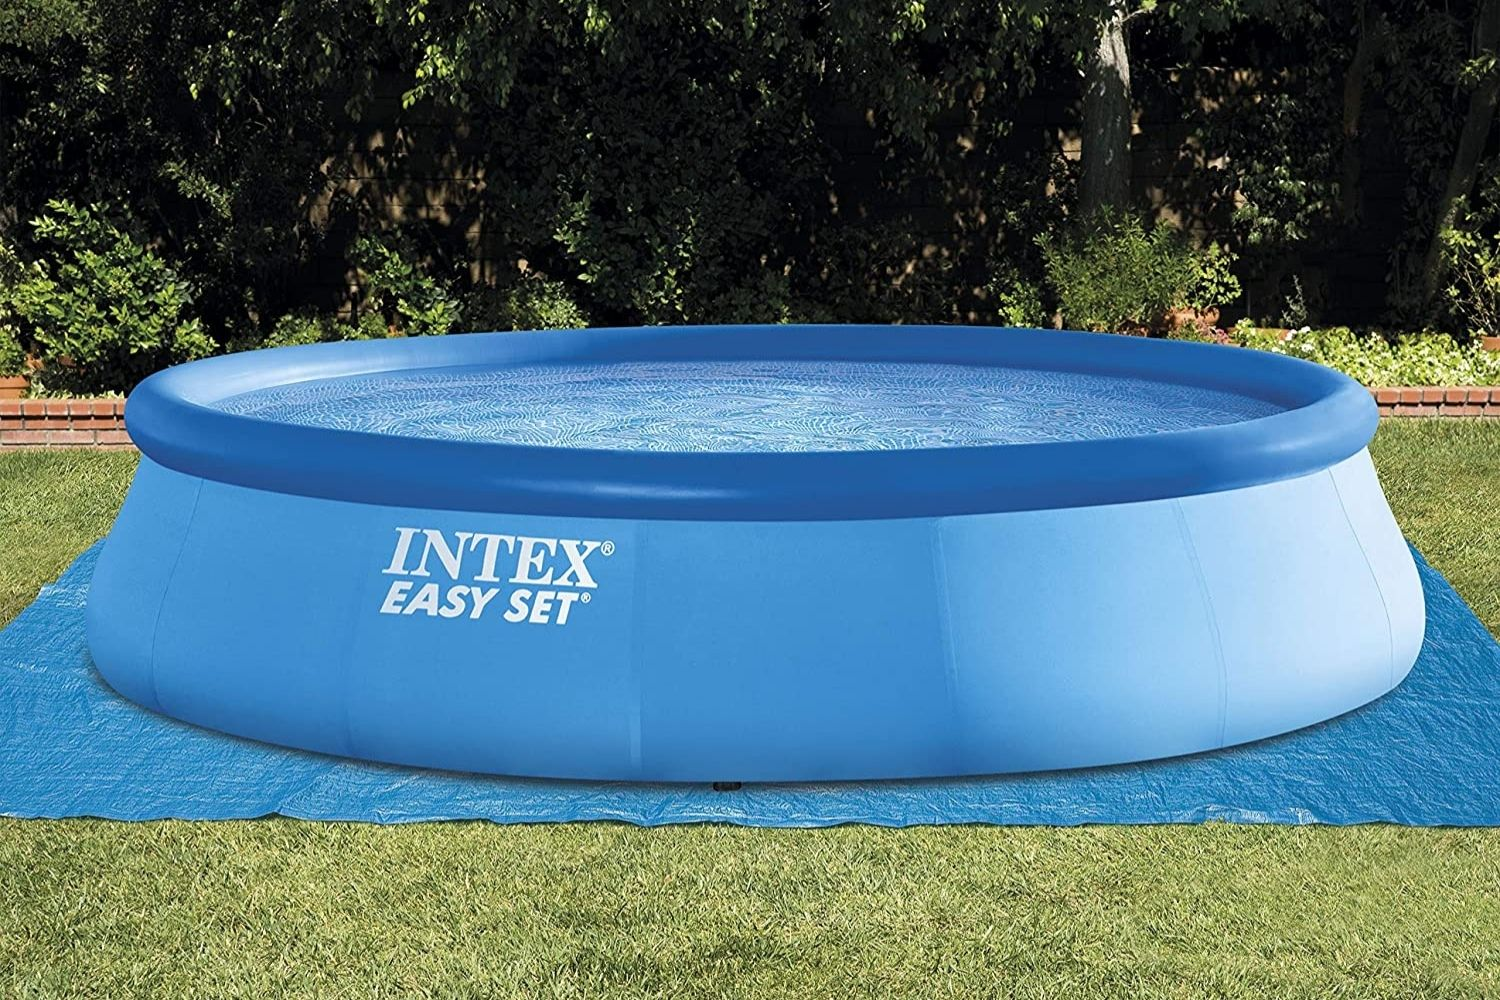 The Best Inflatable Pool Options For Your Backyard In 2021 Bob Vila